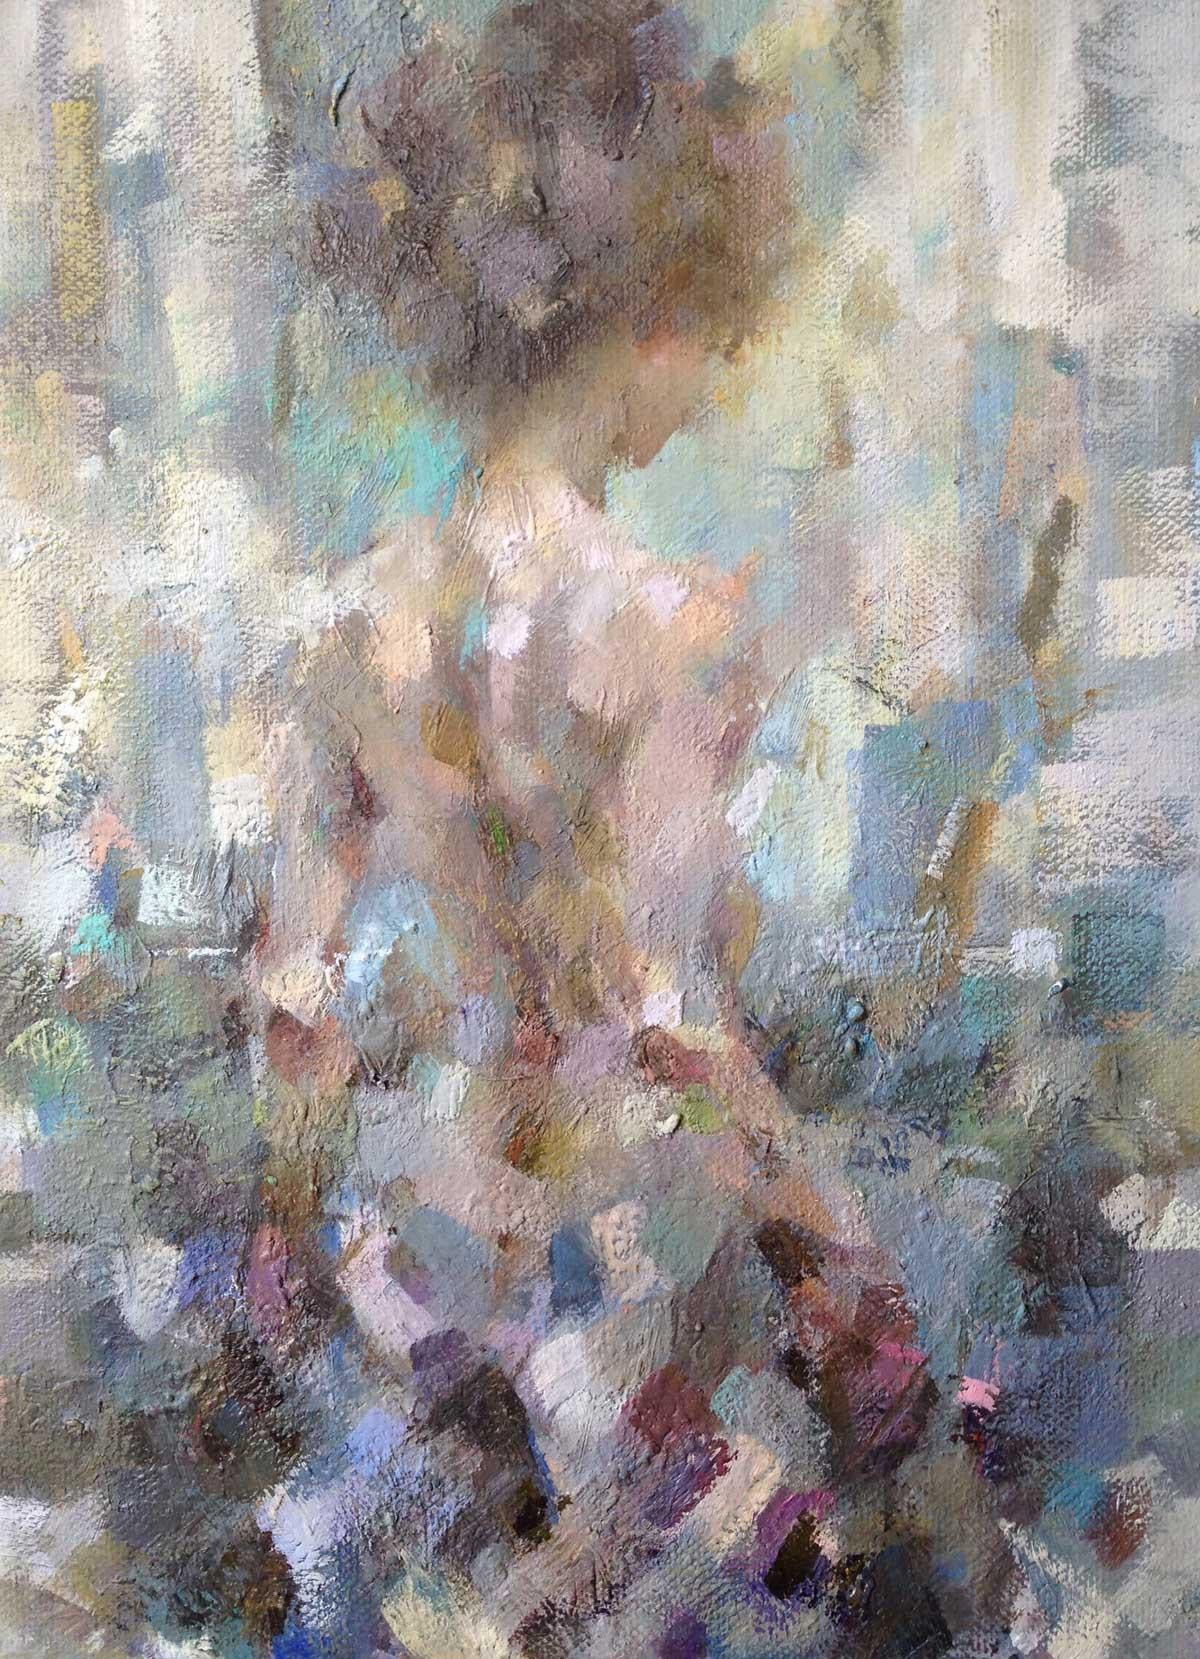 Mia at the Window - Figurative Nude Painting: Oil on Canvas